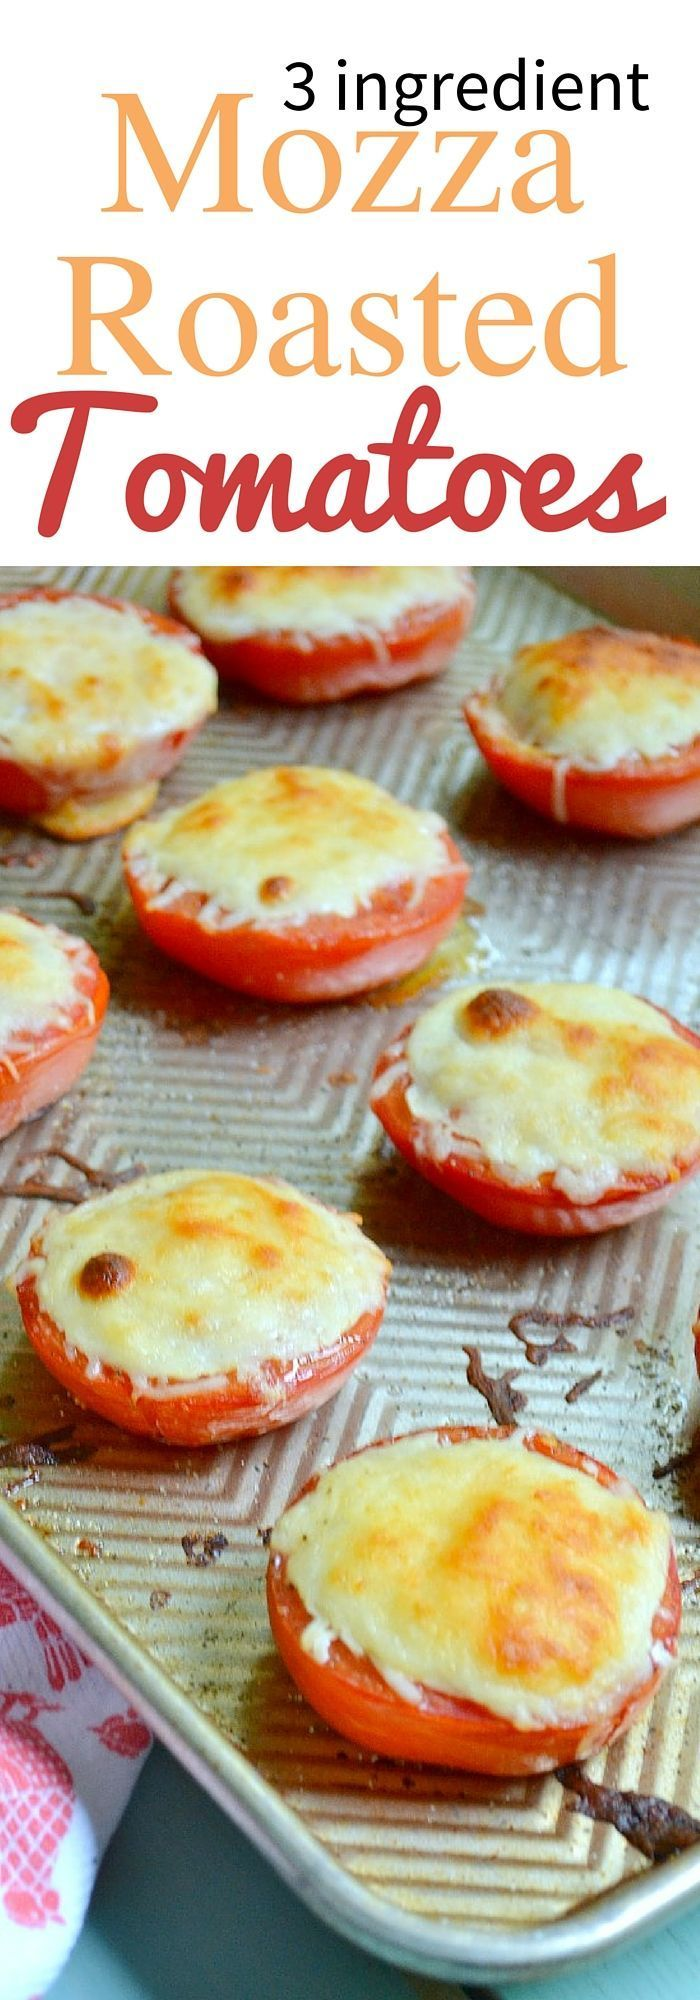 These easy to make Mozzarella Roasted Tomatoes are a great use of summer time tomatoes and a great party appetizer that you can make up lickety split! #BushelBoyFarms #Ad